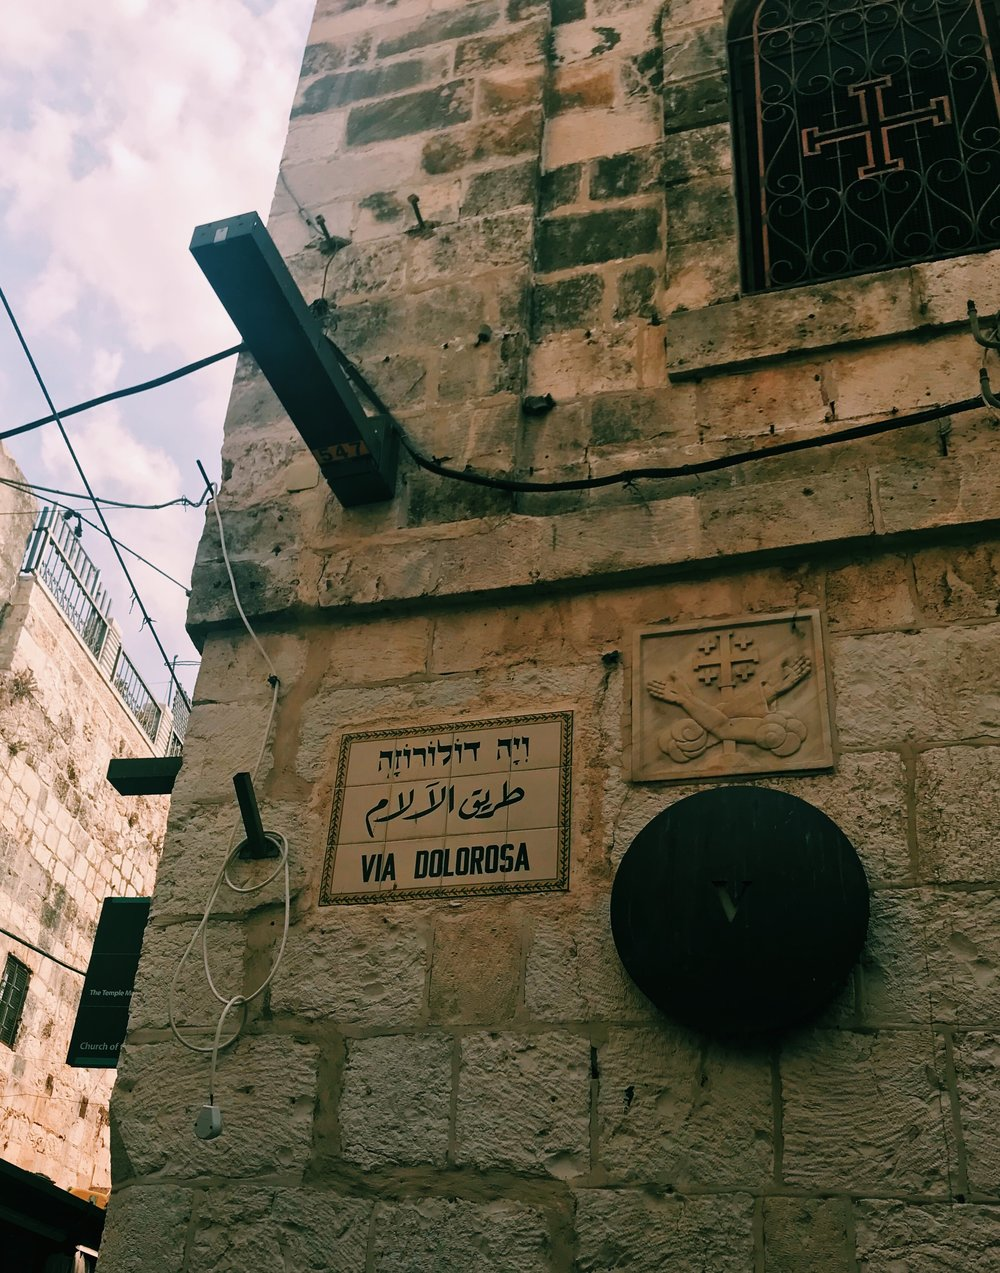 Via Dolorosa // believed to be the path that Jesus walked on the way to his crucifixion.